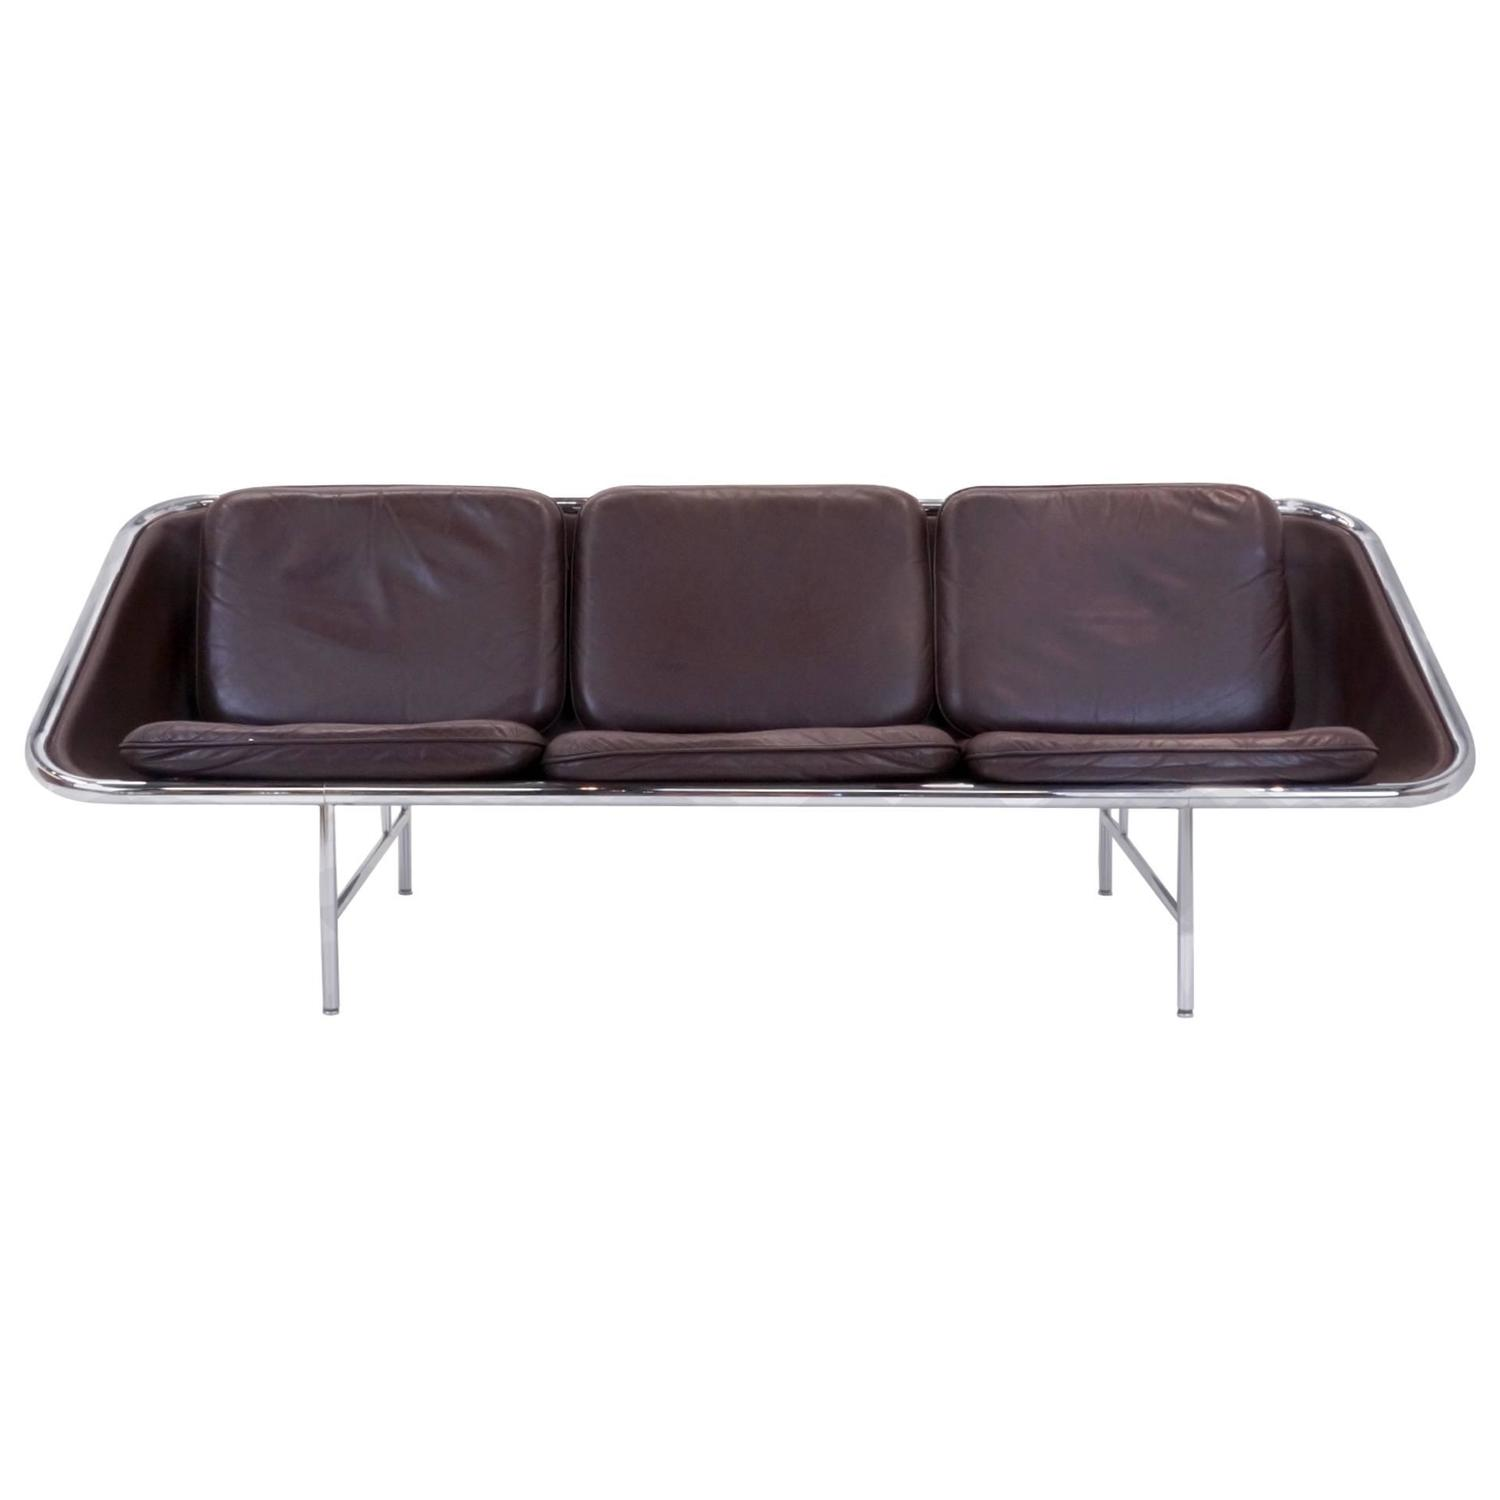 George Nelson Leather Sling Sofa For Herman Miller At 1stdibs